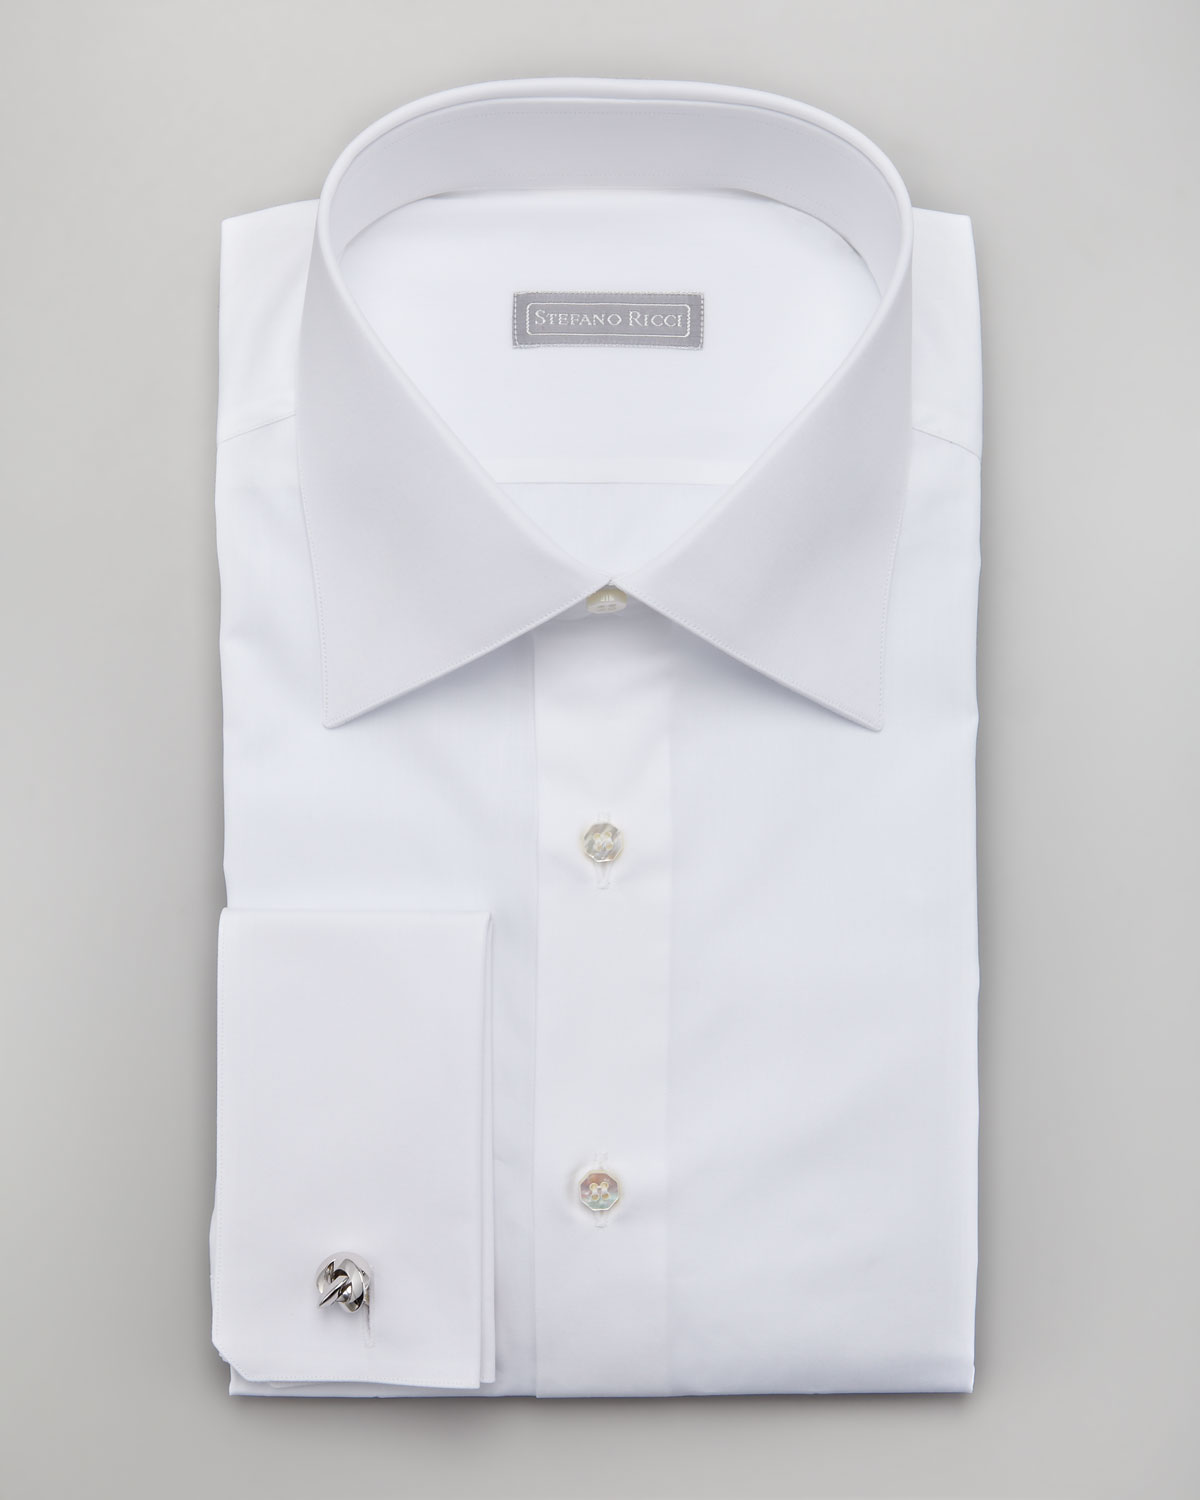 Stefano ricci basic french cuff dress shirt in white for for Mens white french cuff shirt